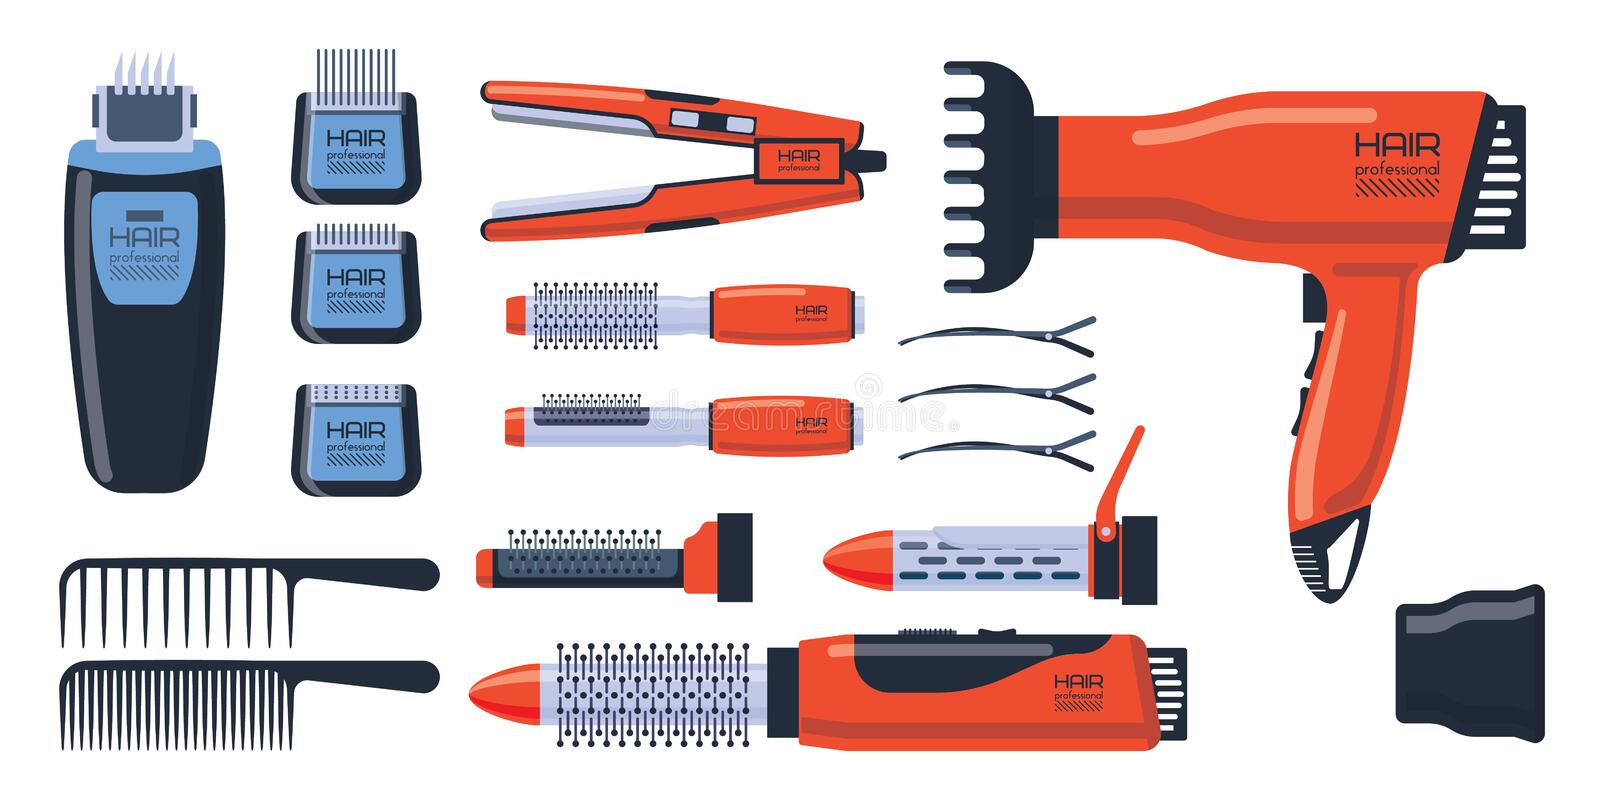 Barber salon professional set with tools equipment and twisting grooming metal barbershop care hairdressing stylist royalty free illustration